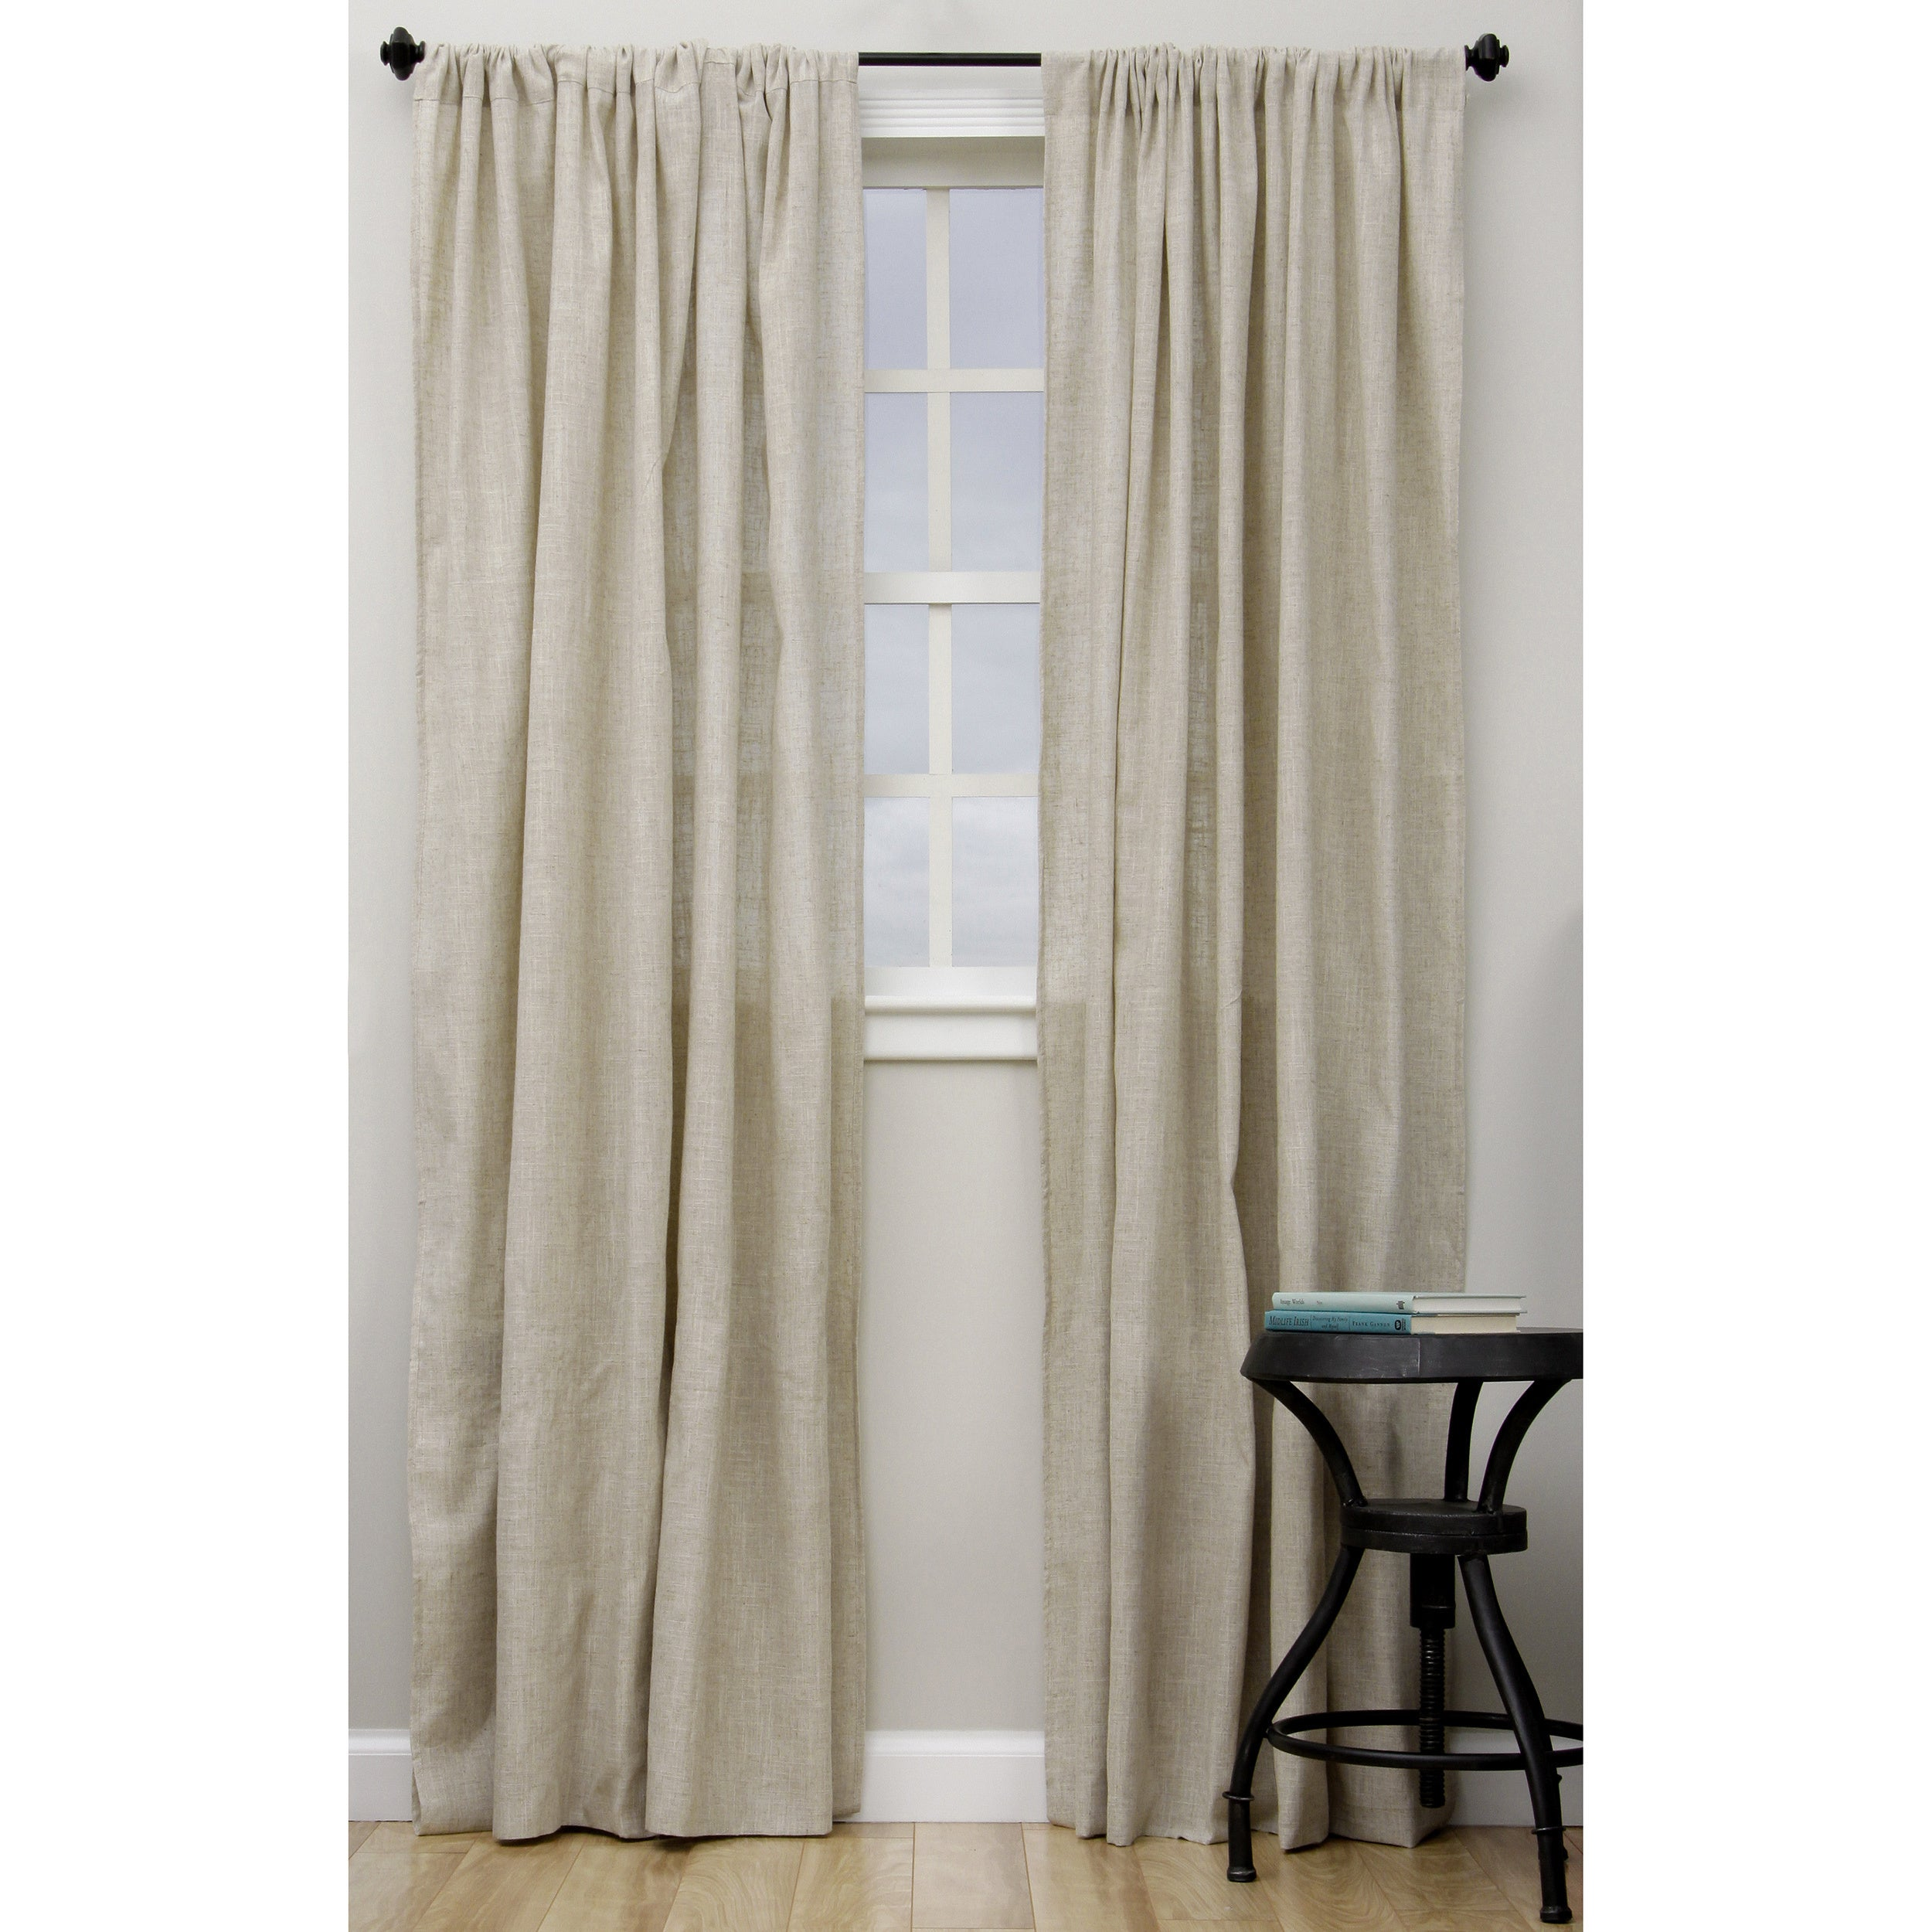 length honoroak inch blackout curtain beautiful the curtains long lined home